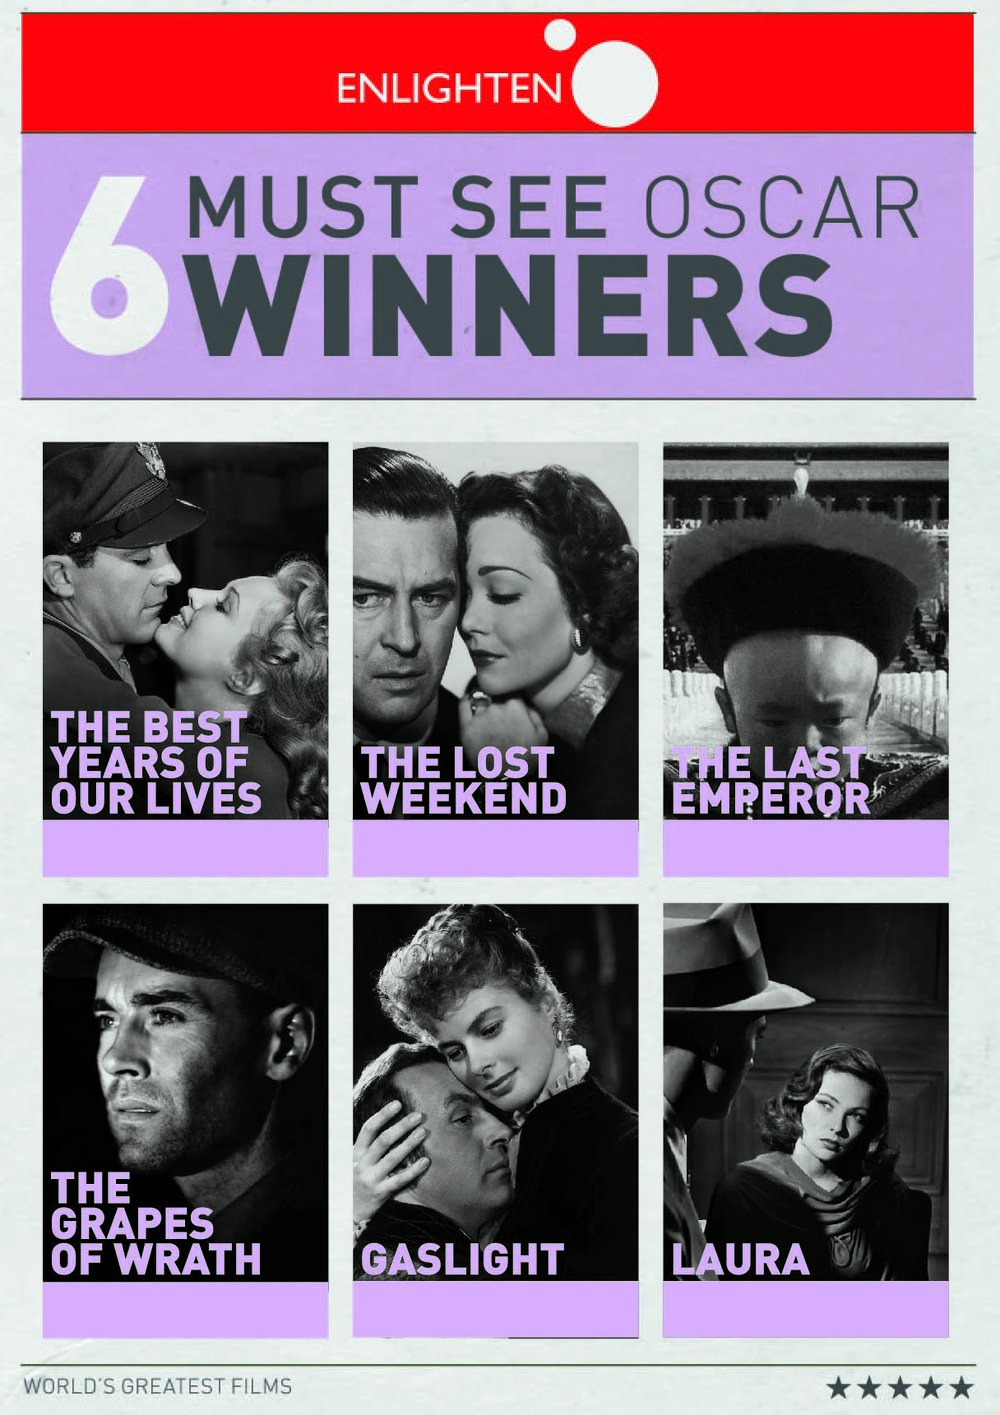 6 MUST SEE OSCAR WINNERS CARD.jpg